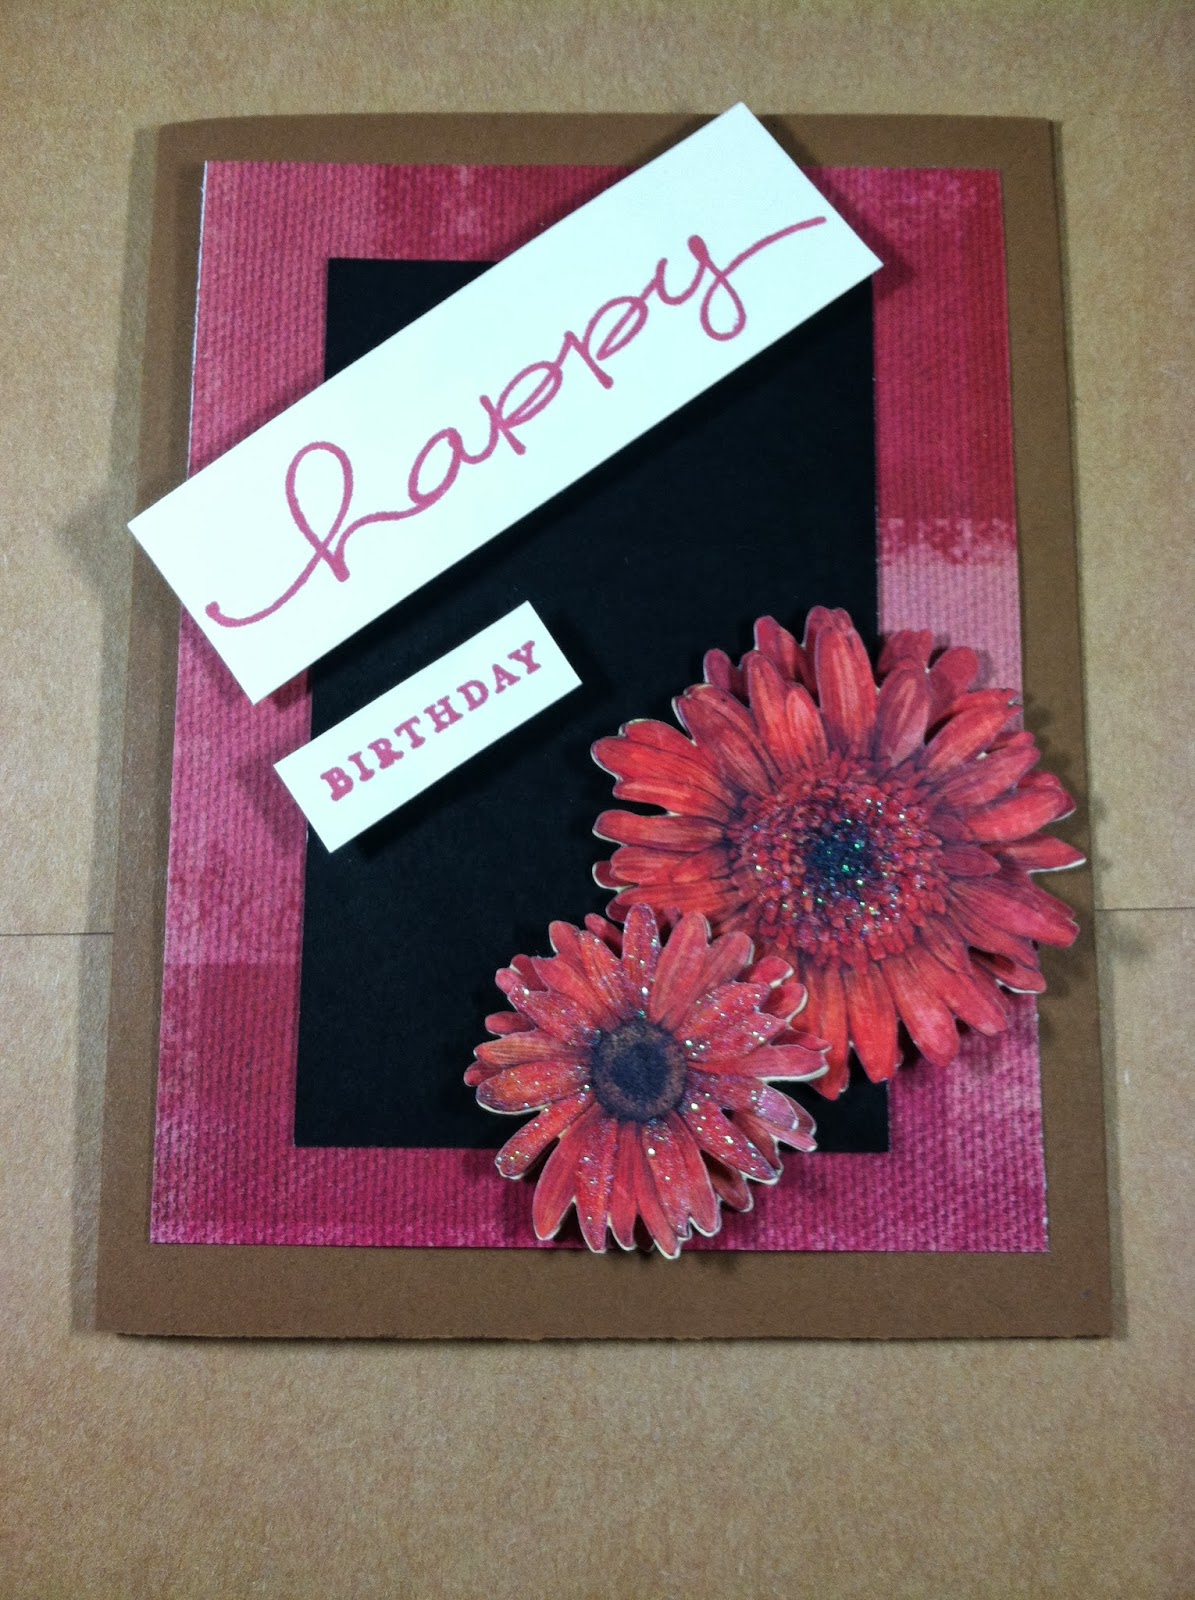 Vannoy plain simple february 2014 i got the red blossom style sarah had a variety of color schemes that coordinated with different types of flowers very nice card kristyandbryce Images